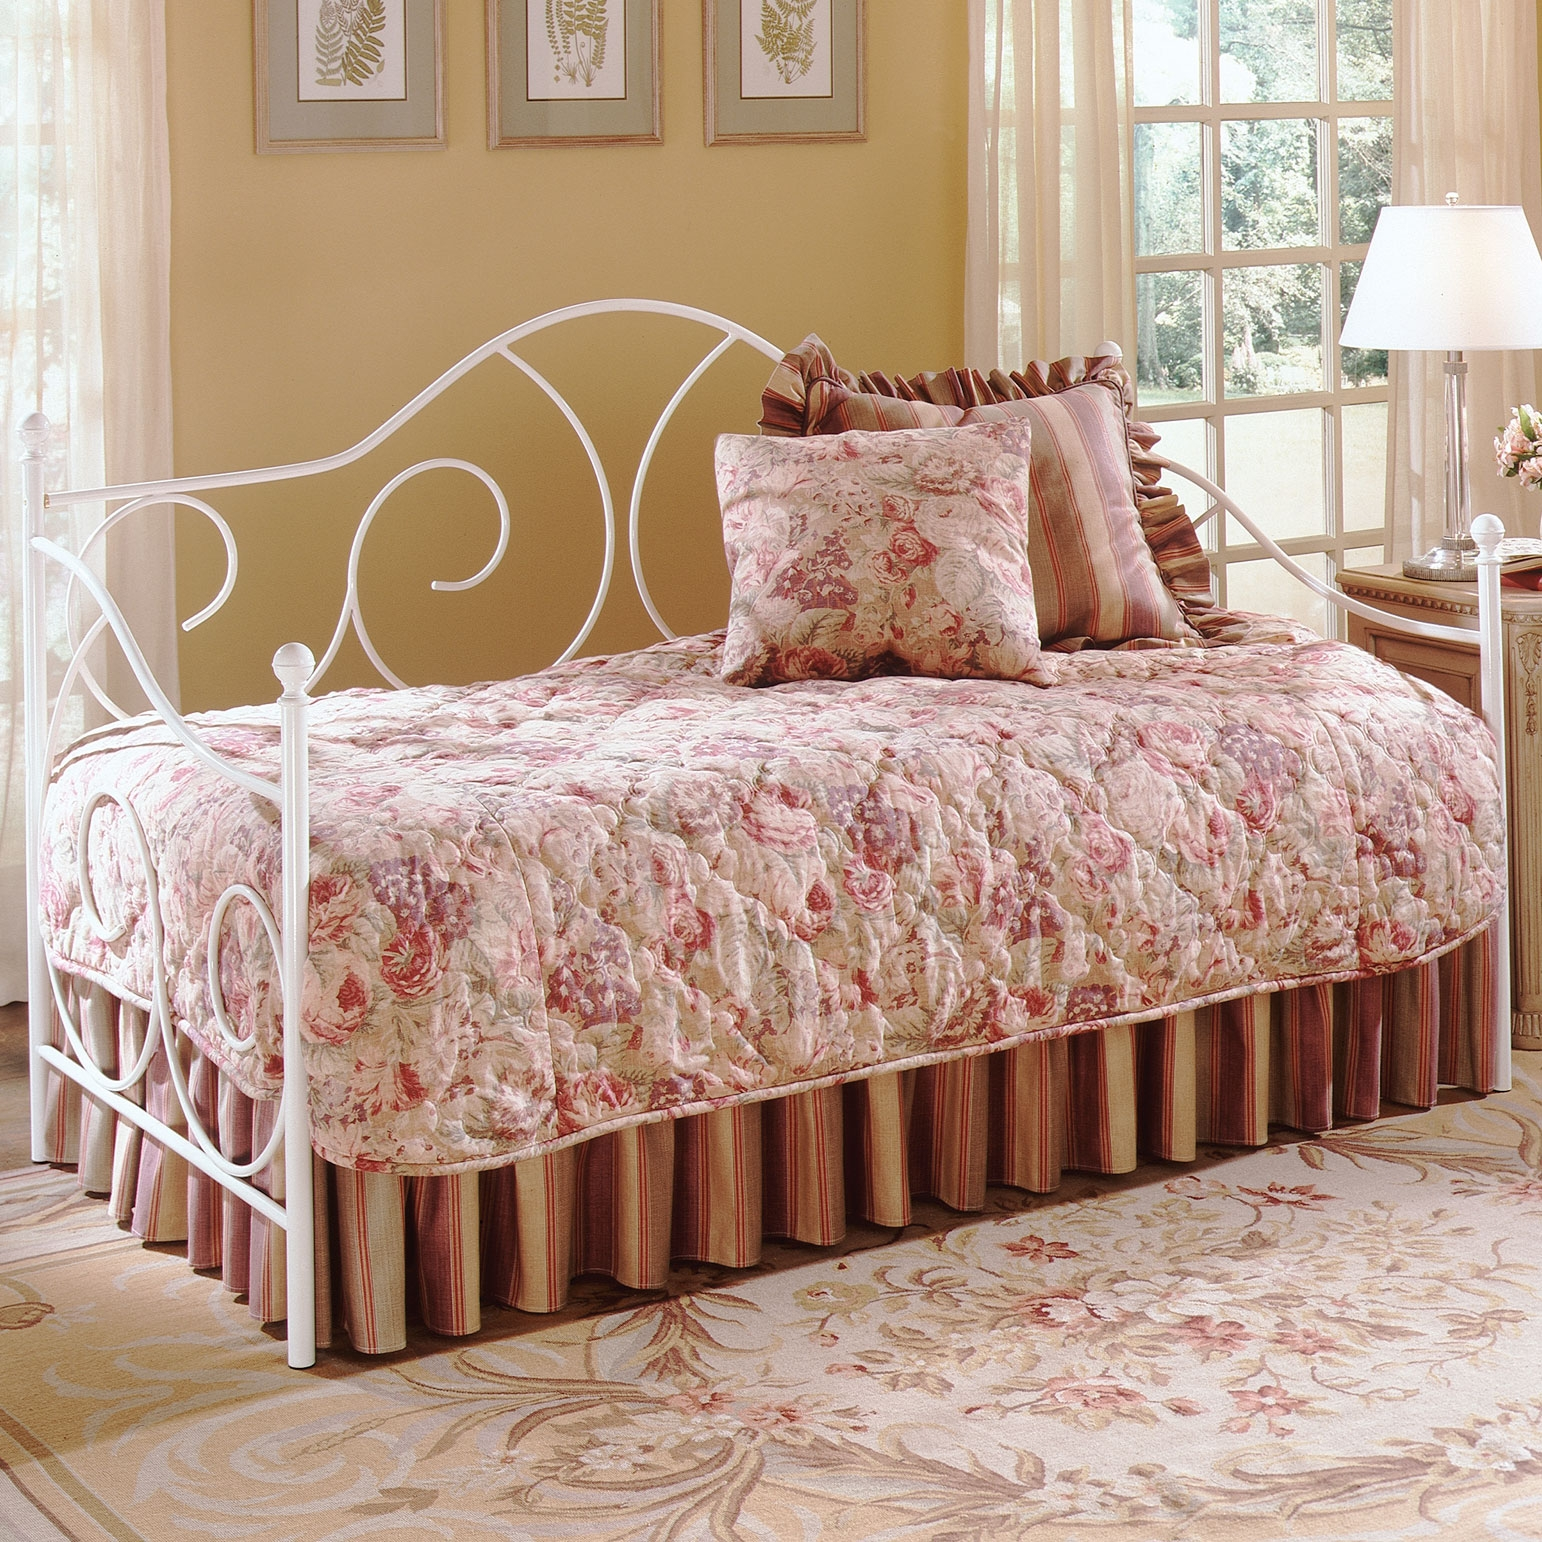 Picture of: Caroline Iron Daybed With Soft Curving Design